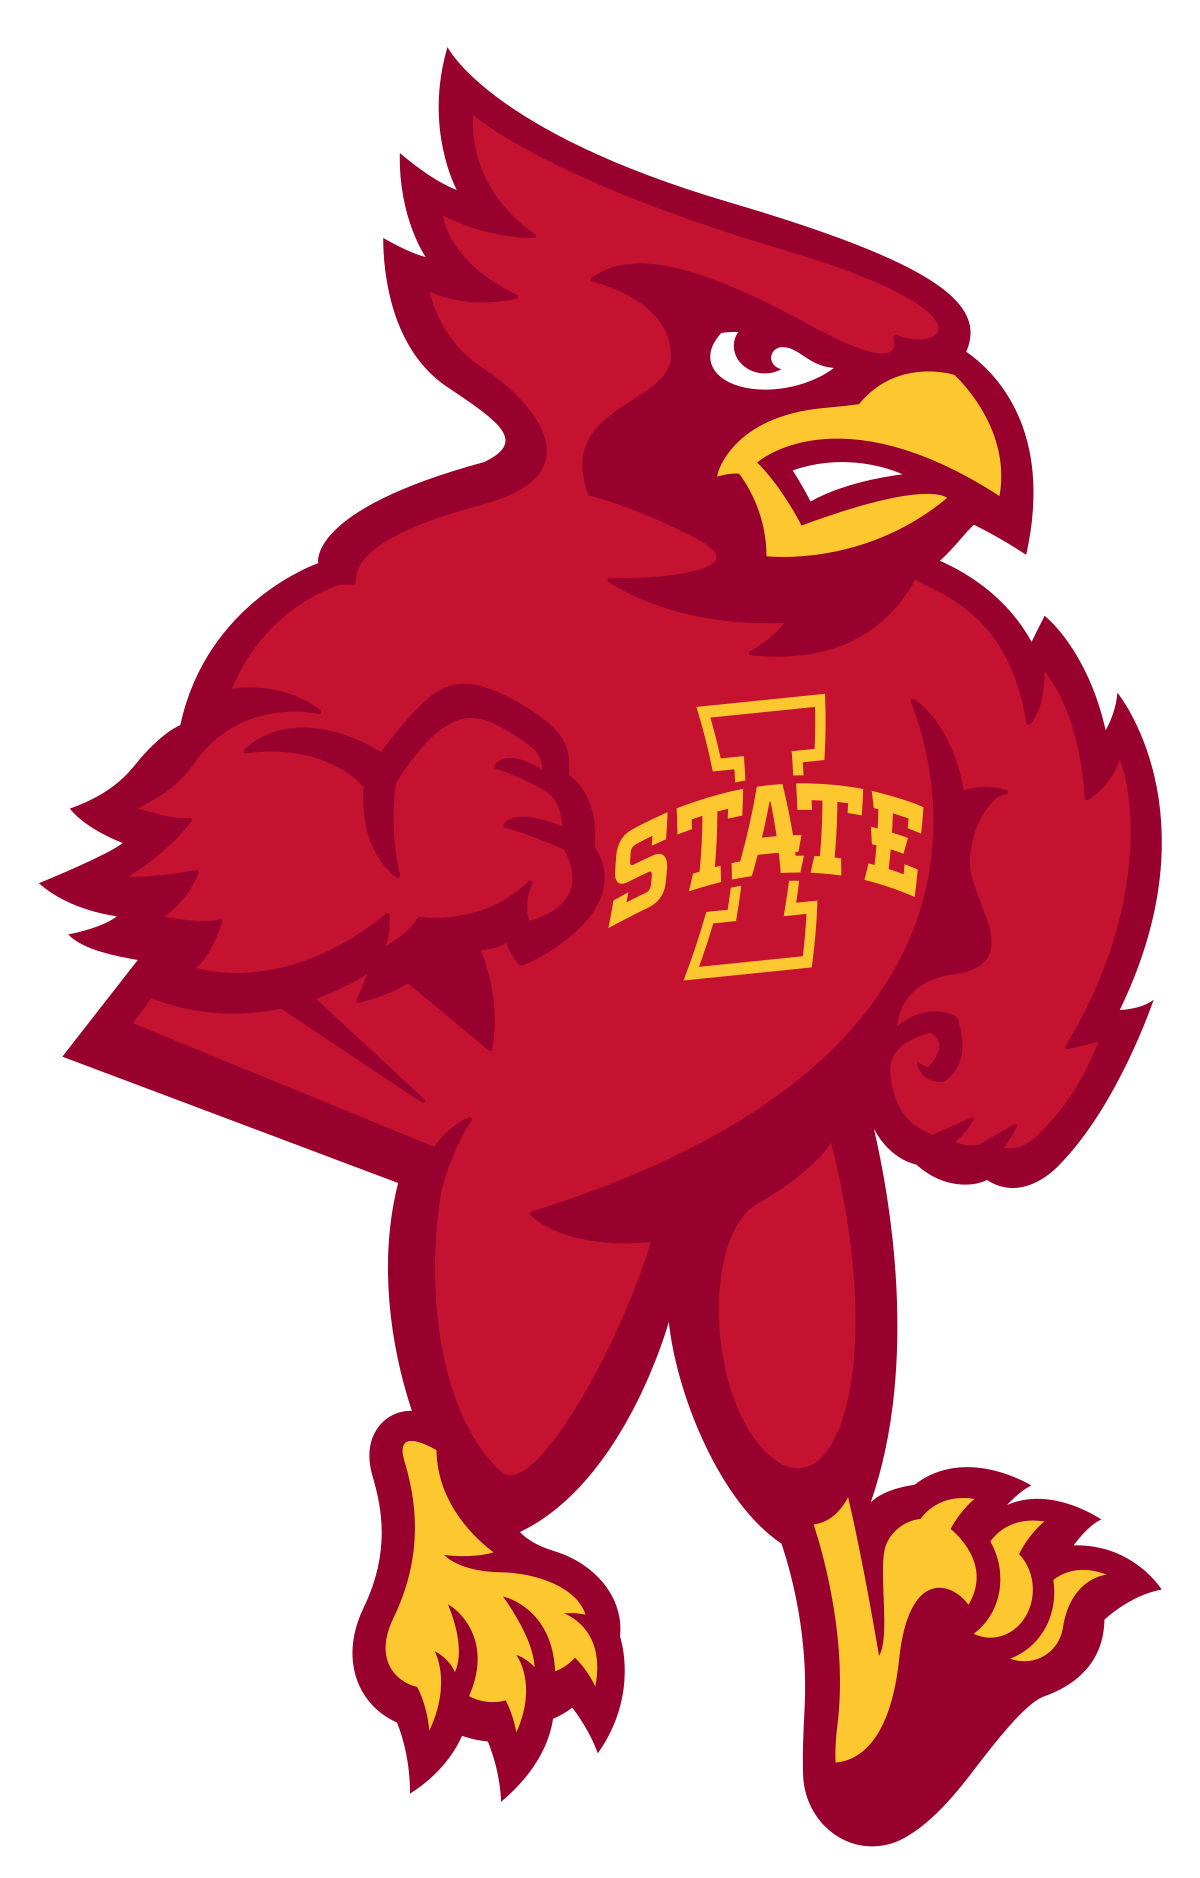 Iowa state university logo clipart clipart free stock Cy the Cardinal - Wikipedia clipart free stock